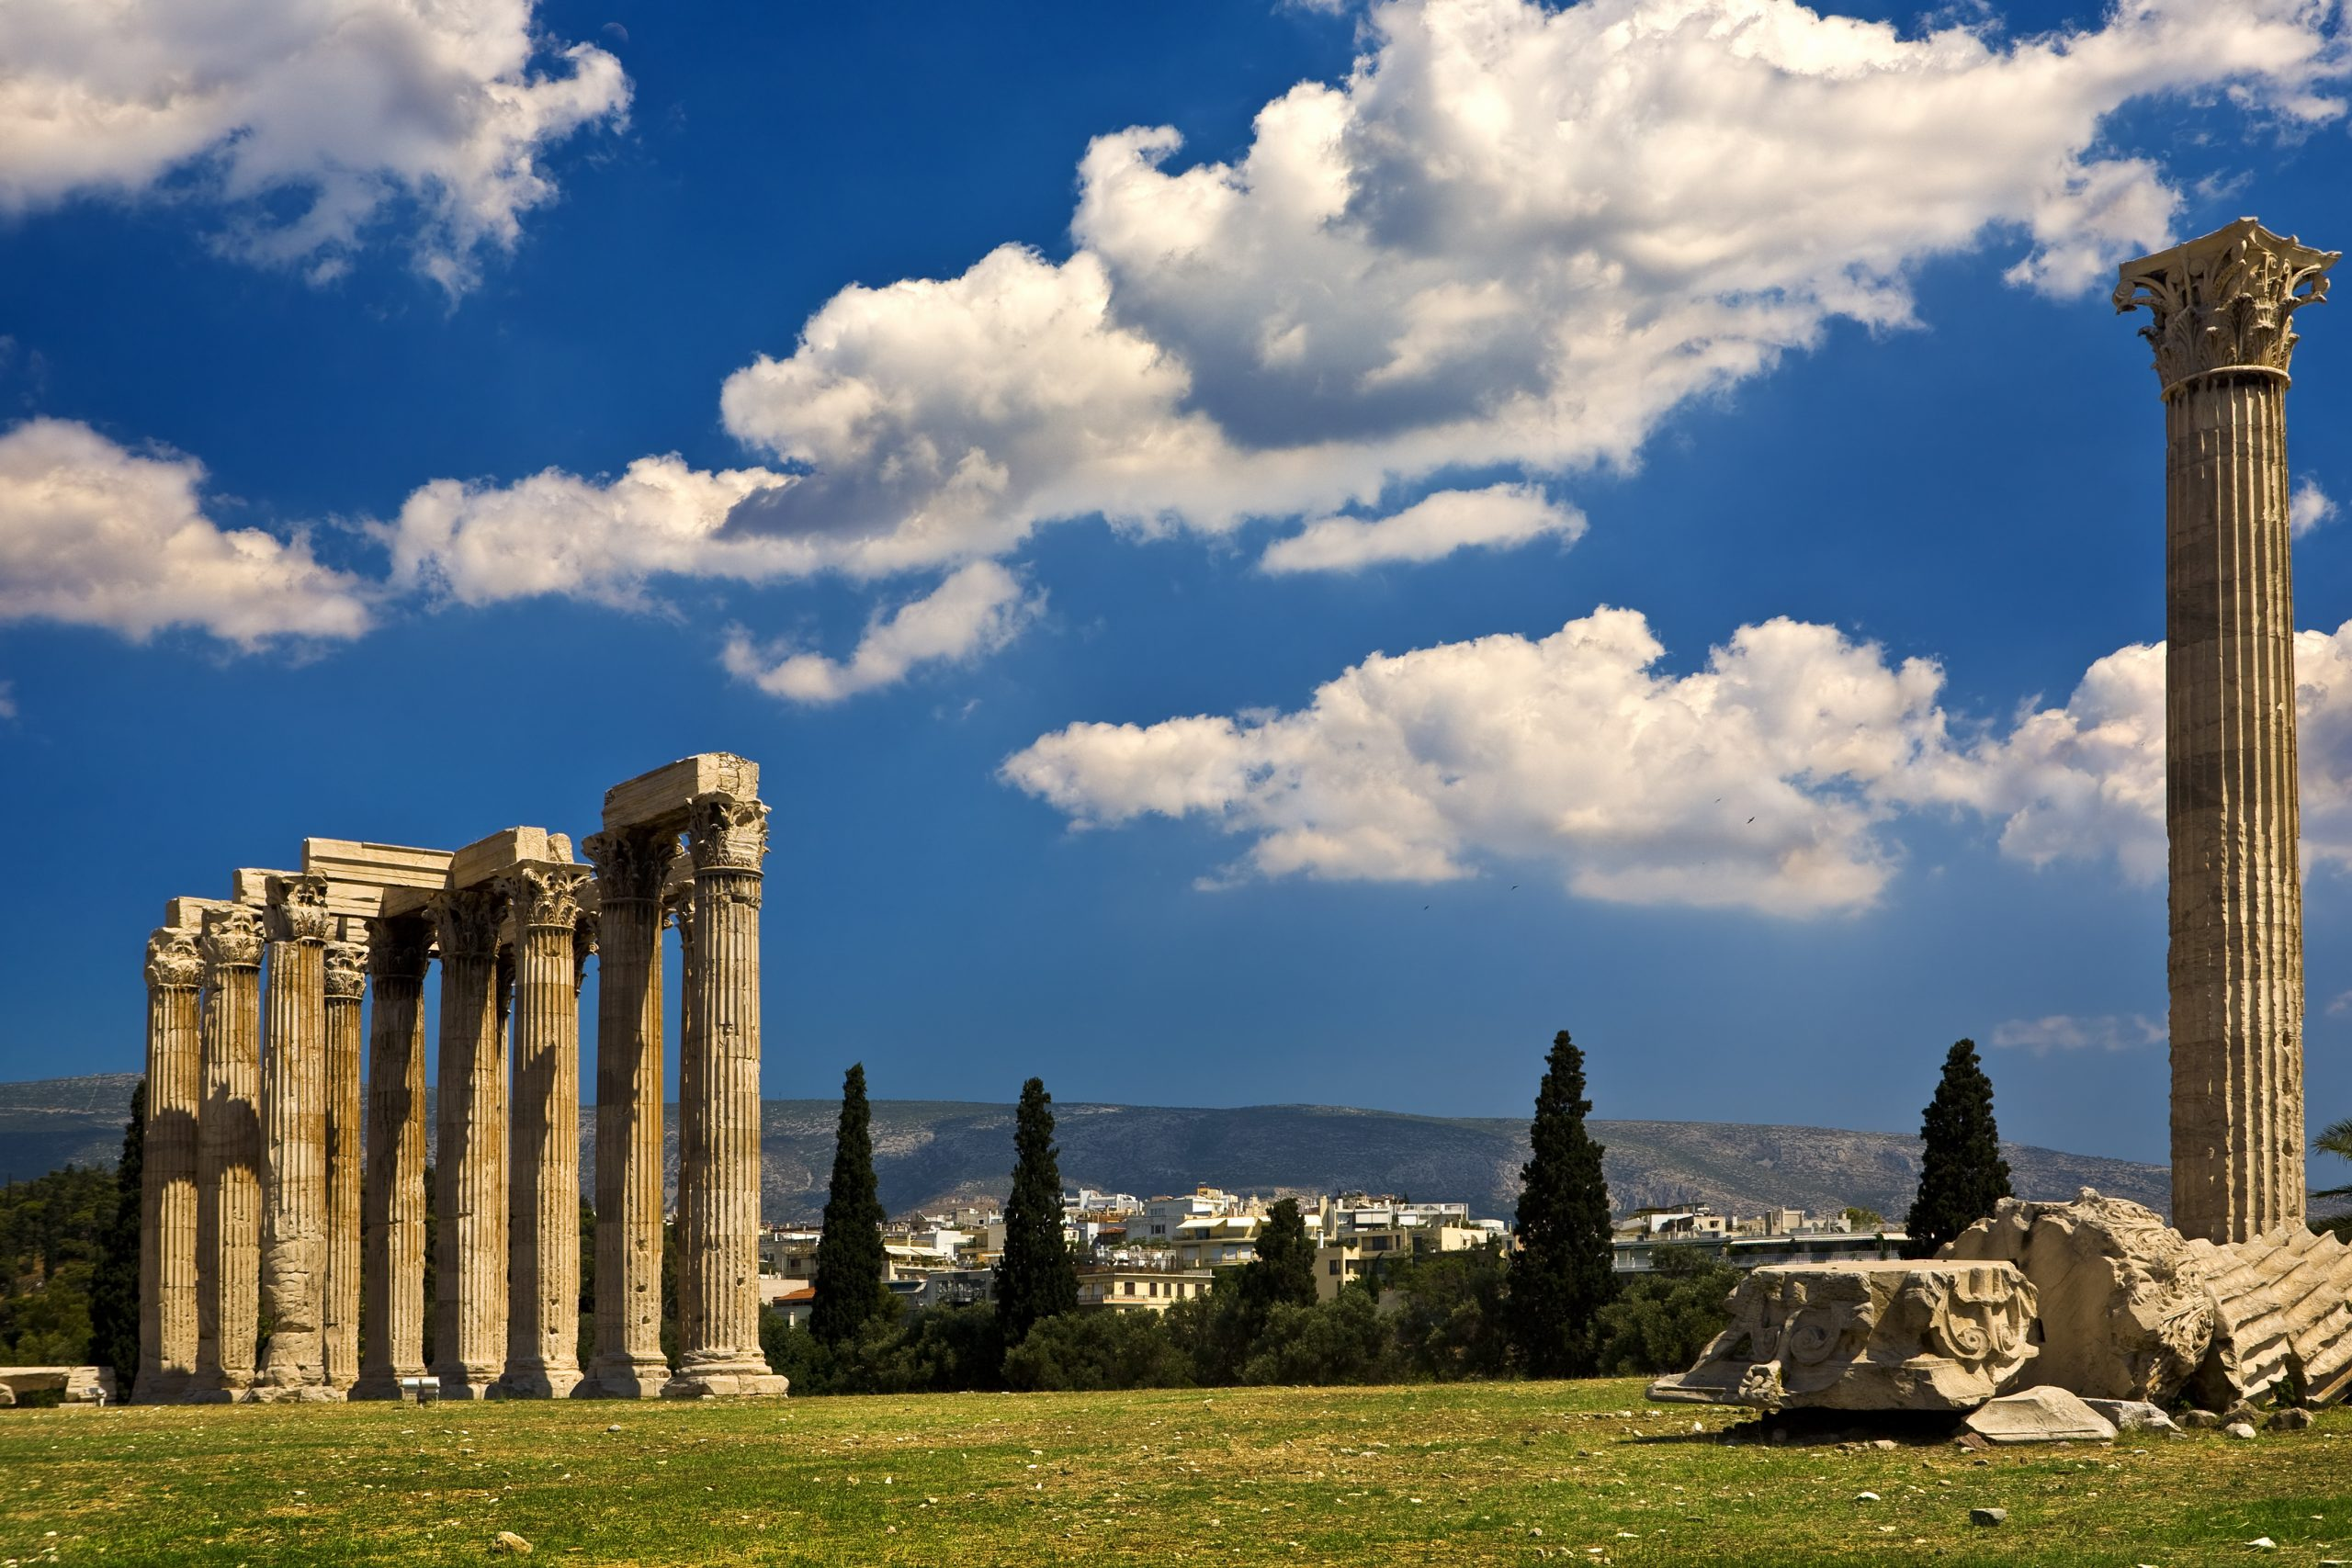 Explore The Temple Of Olympian Zeus (olympieion), One Of The Largest Zeus Temples In The World On Your Athens Myth Tour